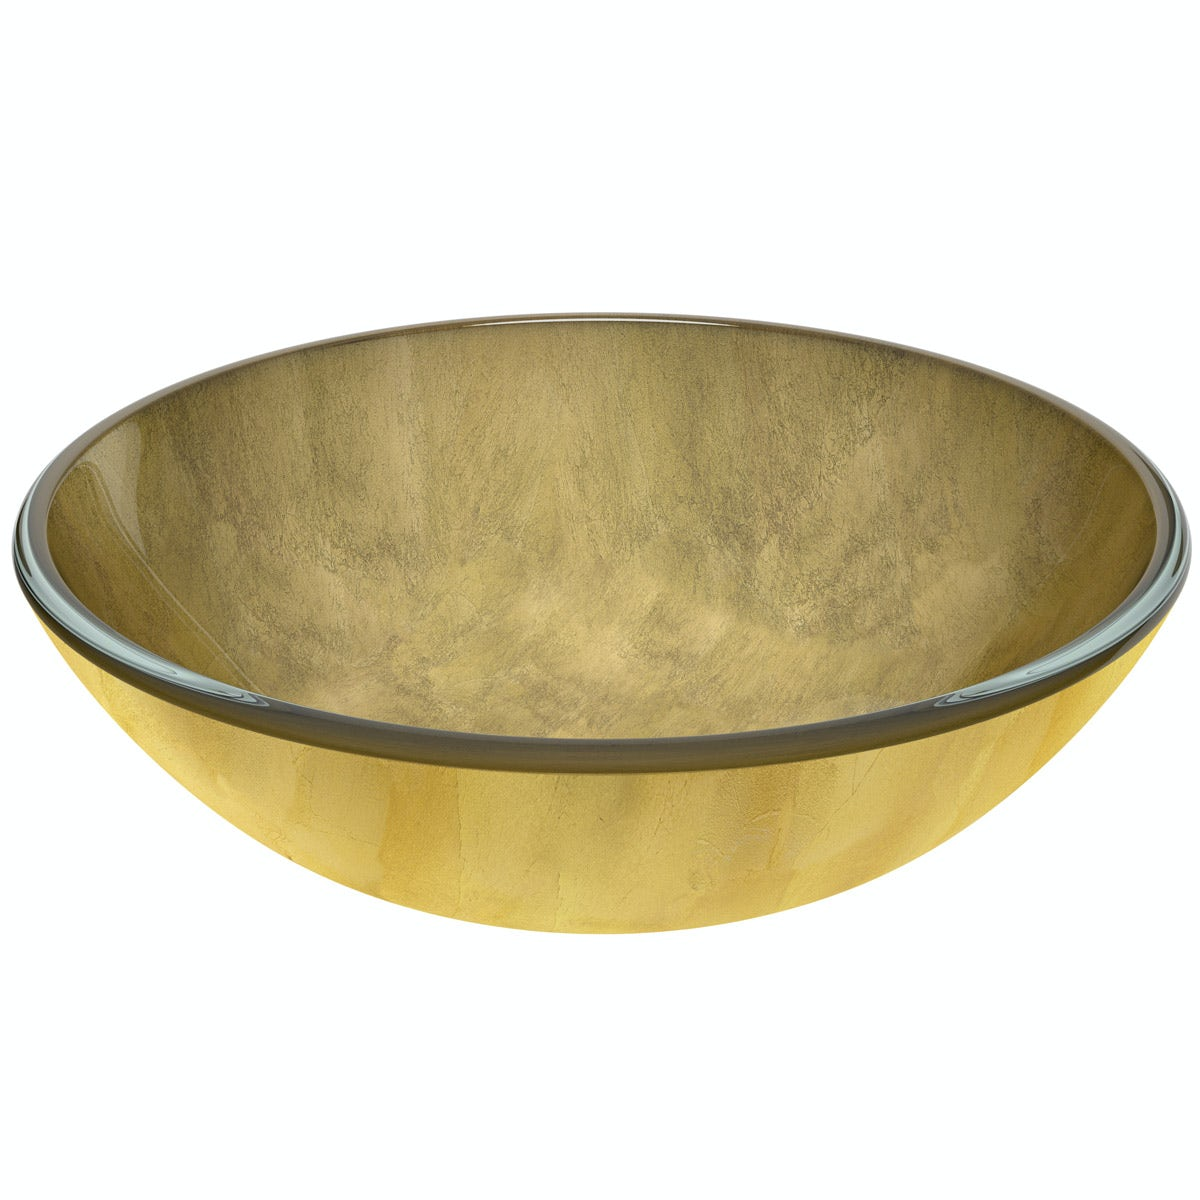 Mode Mackintosh gold foil glass countertop basin with waste